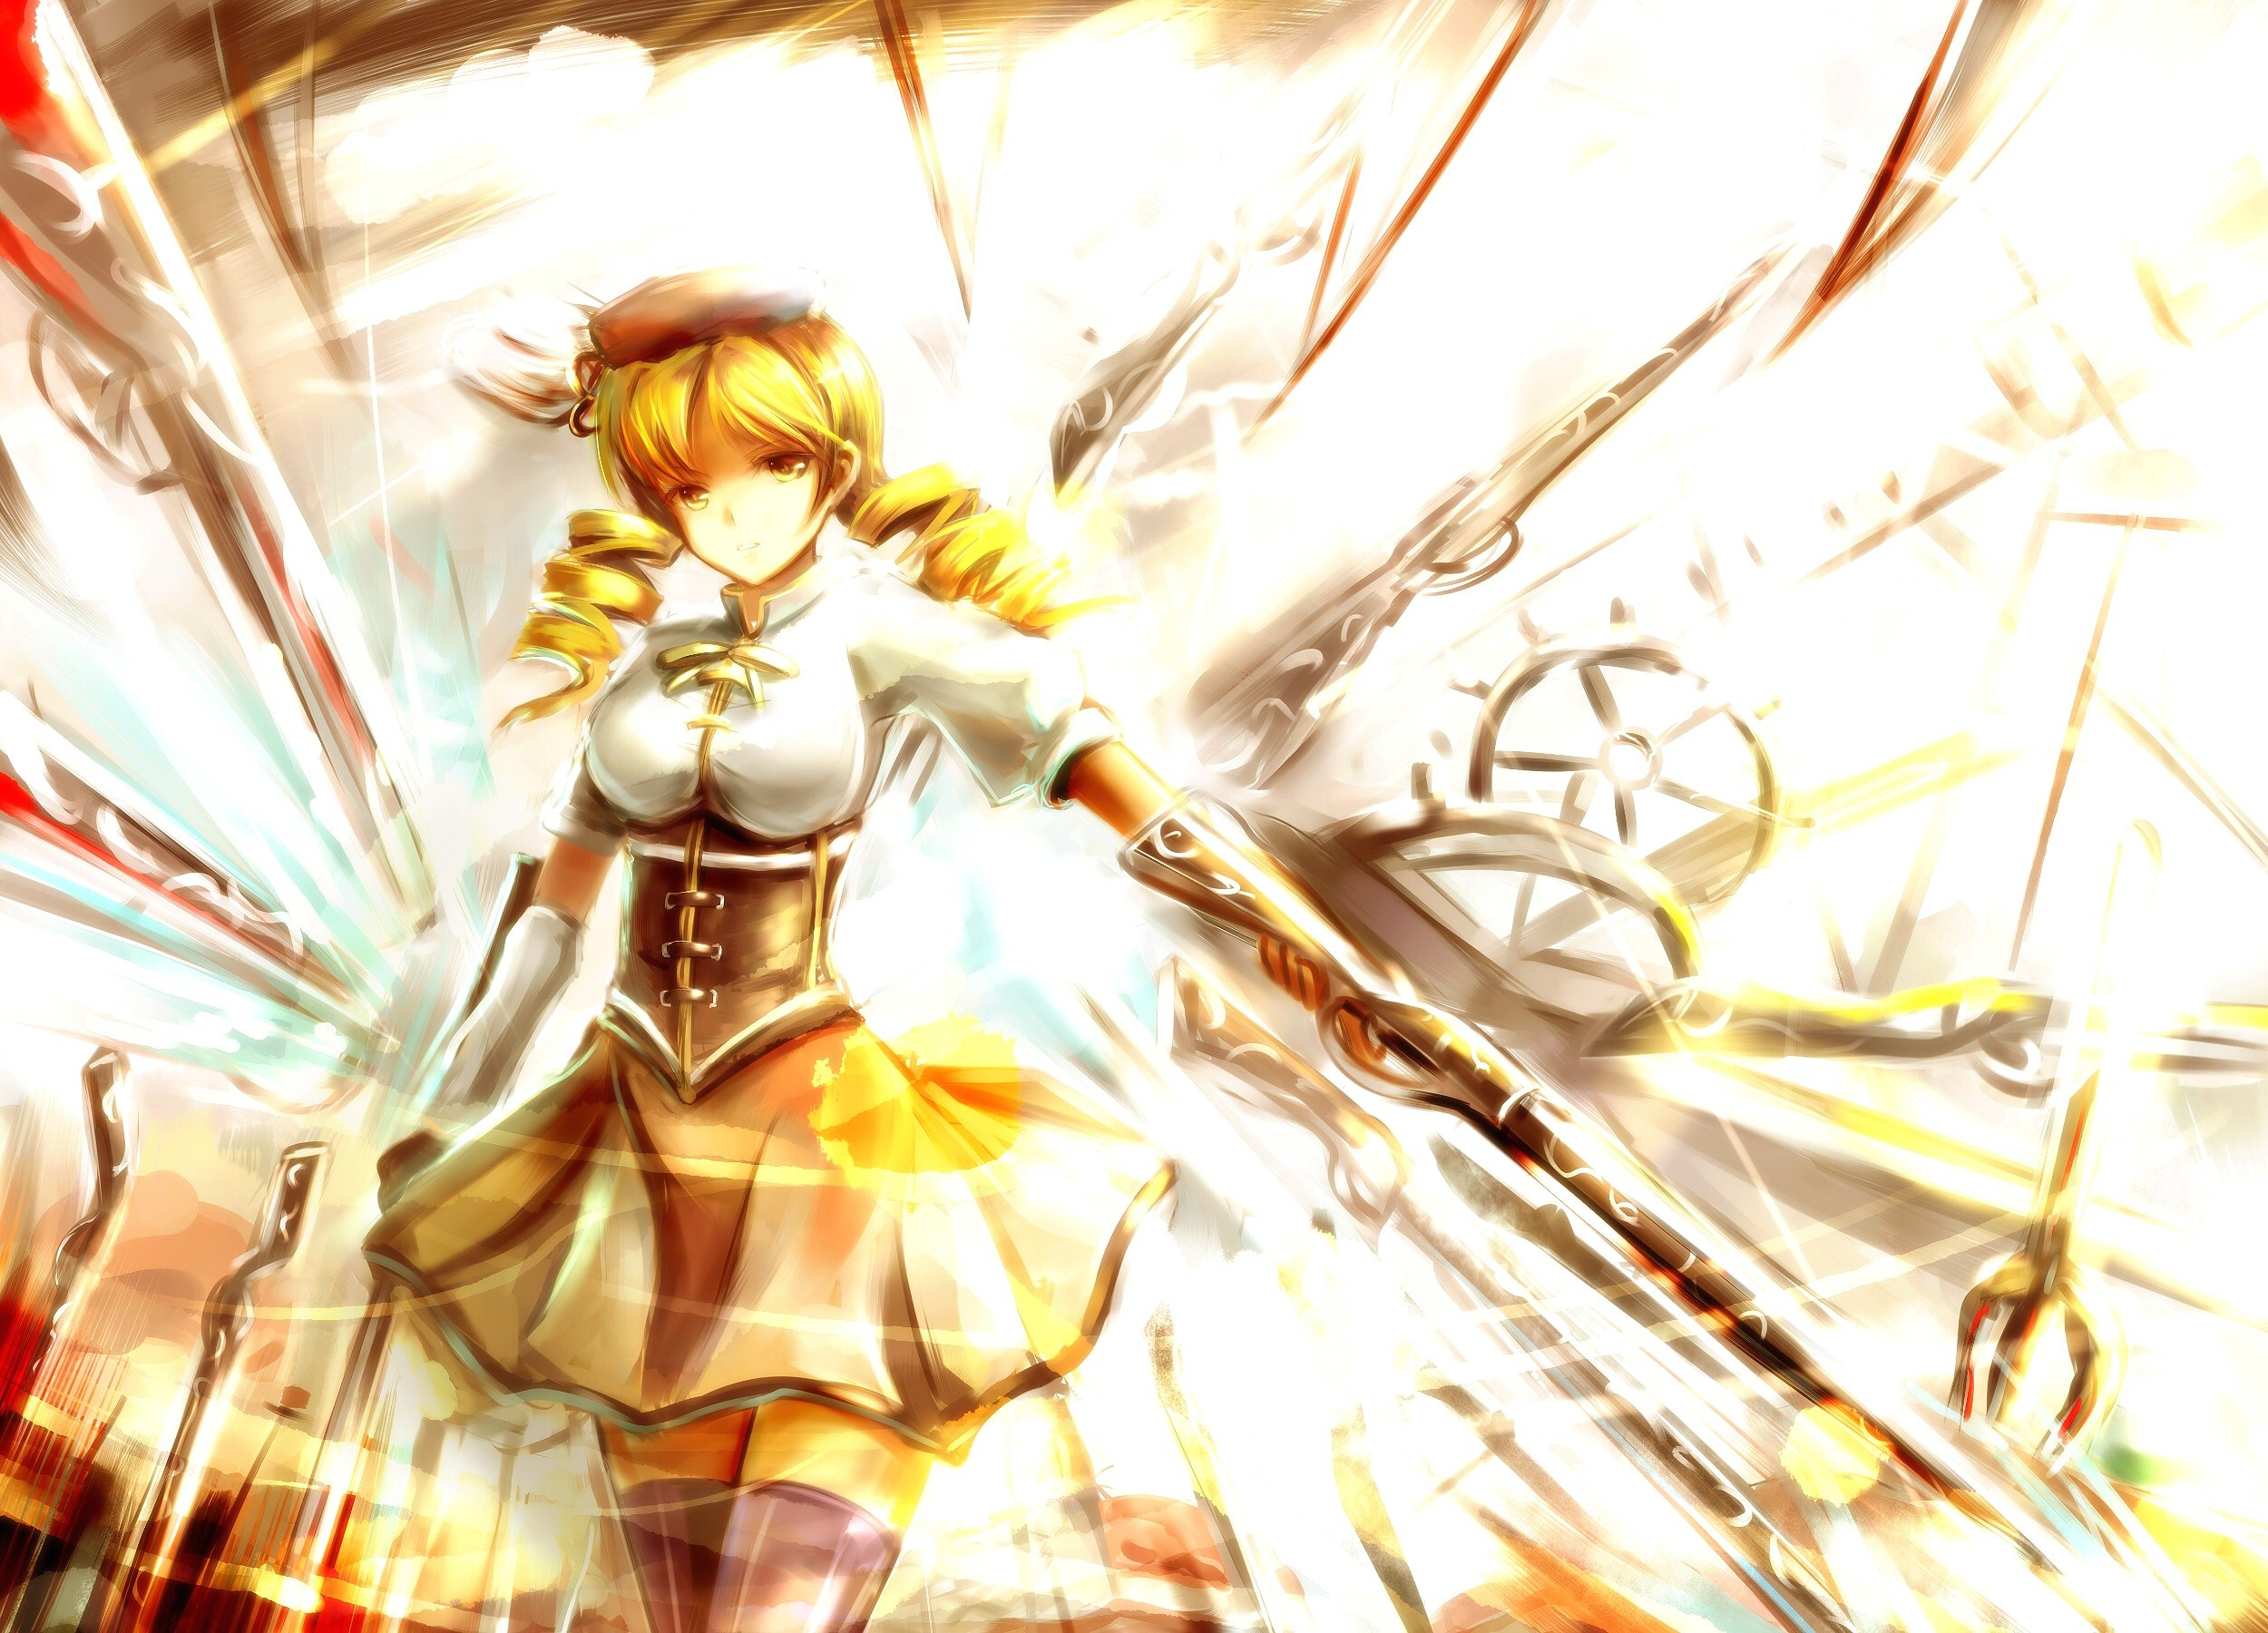 Puella Magi Madoka Magica Images Mami Tomoe Hd Wallpaper And